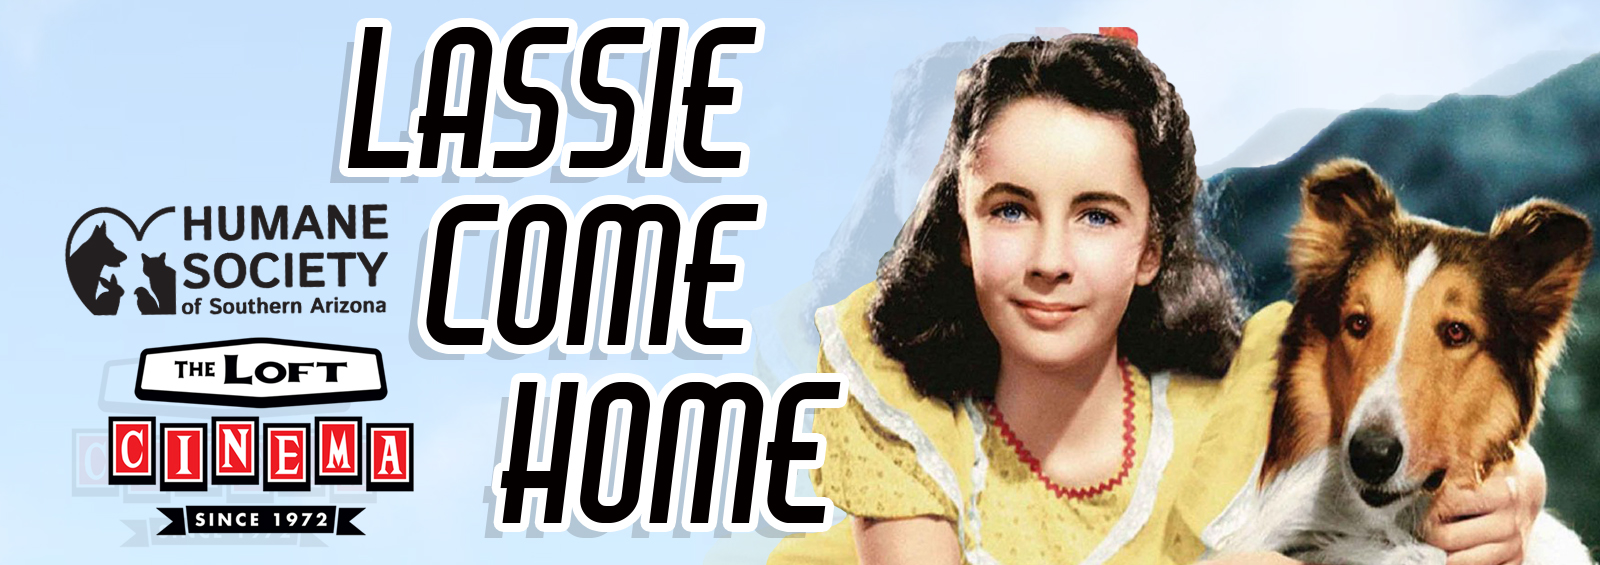 Lassie come home website graphic